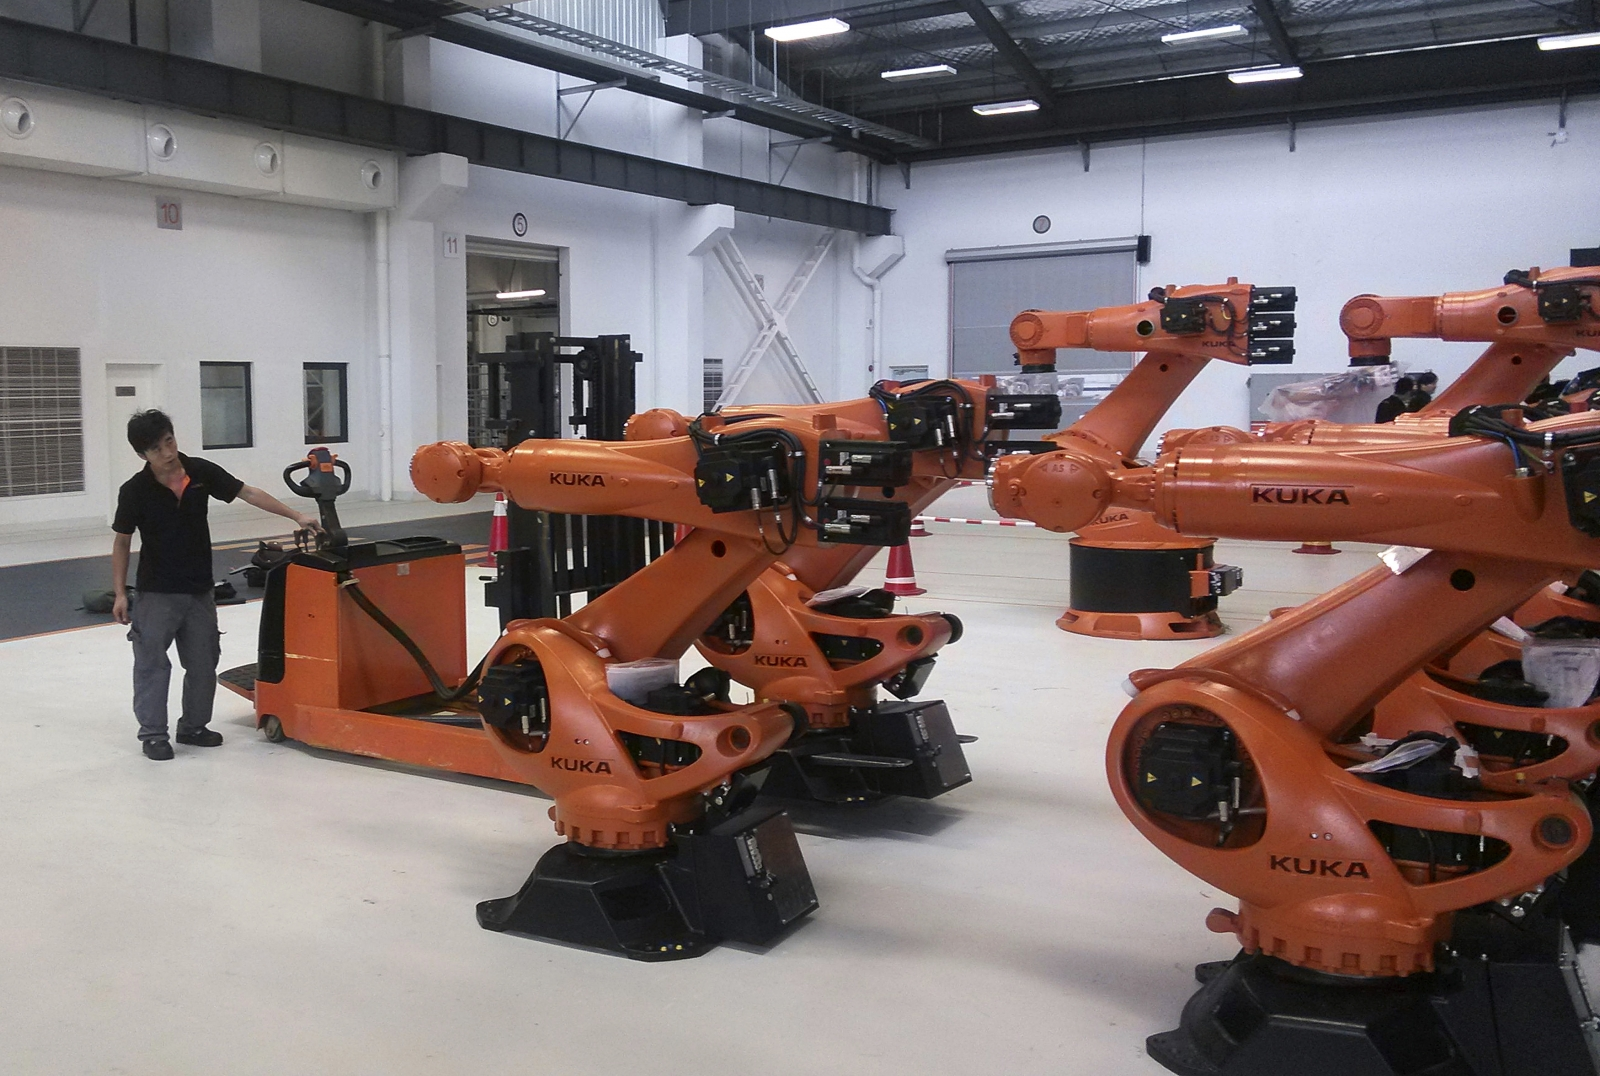 Kuka Robotics in Shanghai